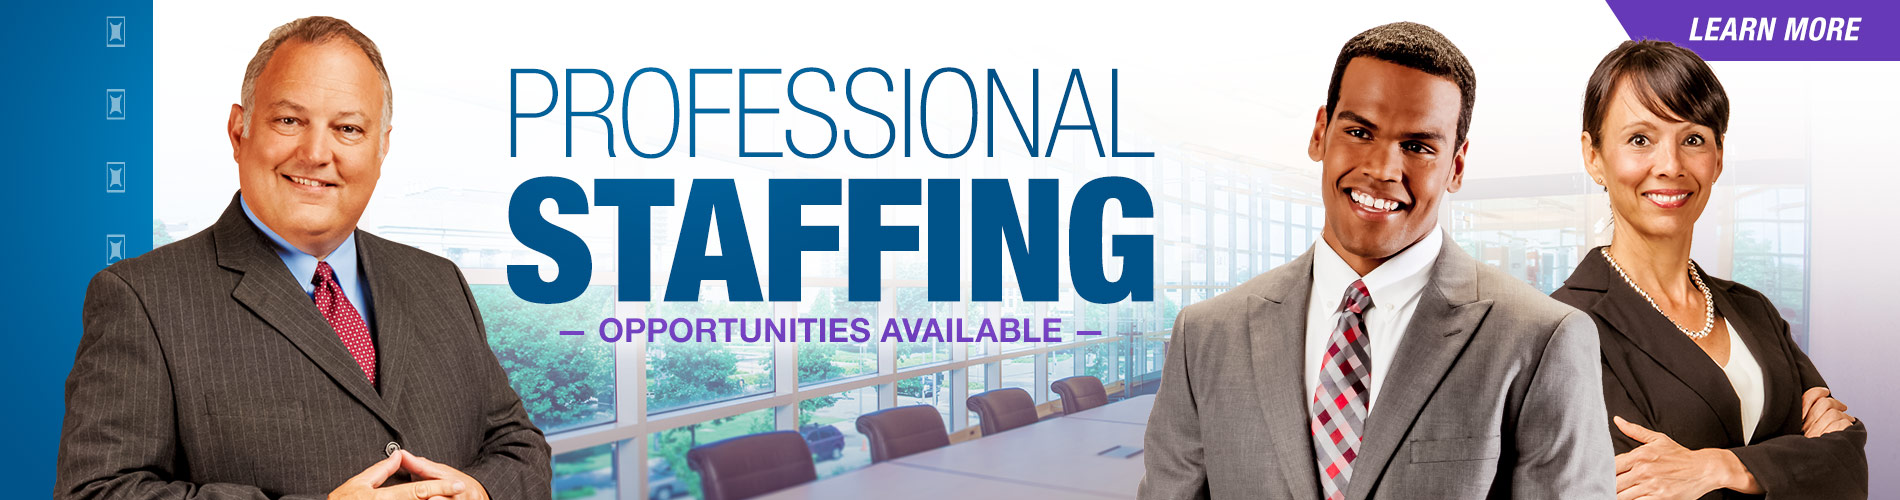 Temp Staffing Banners Purple Party Banners